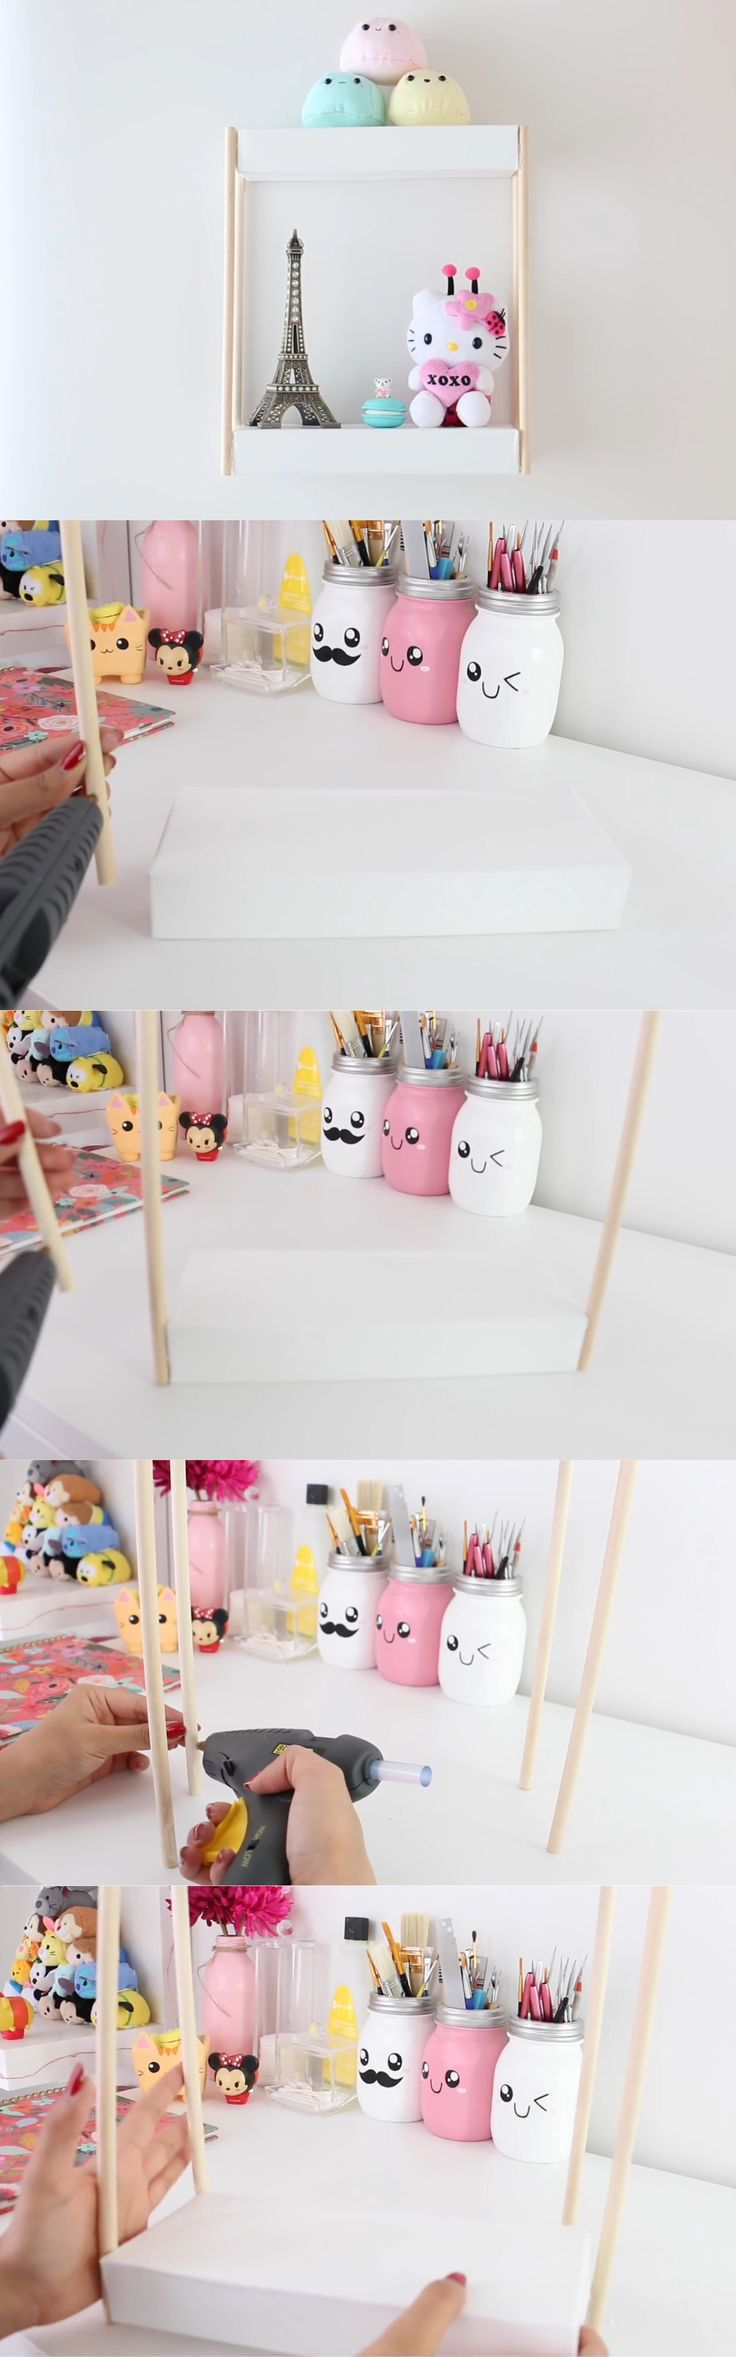 24 best images about nim c diy on pinterest videos for Cute diy bedroom ideas